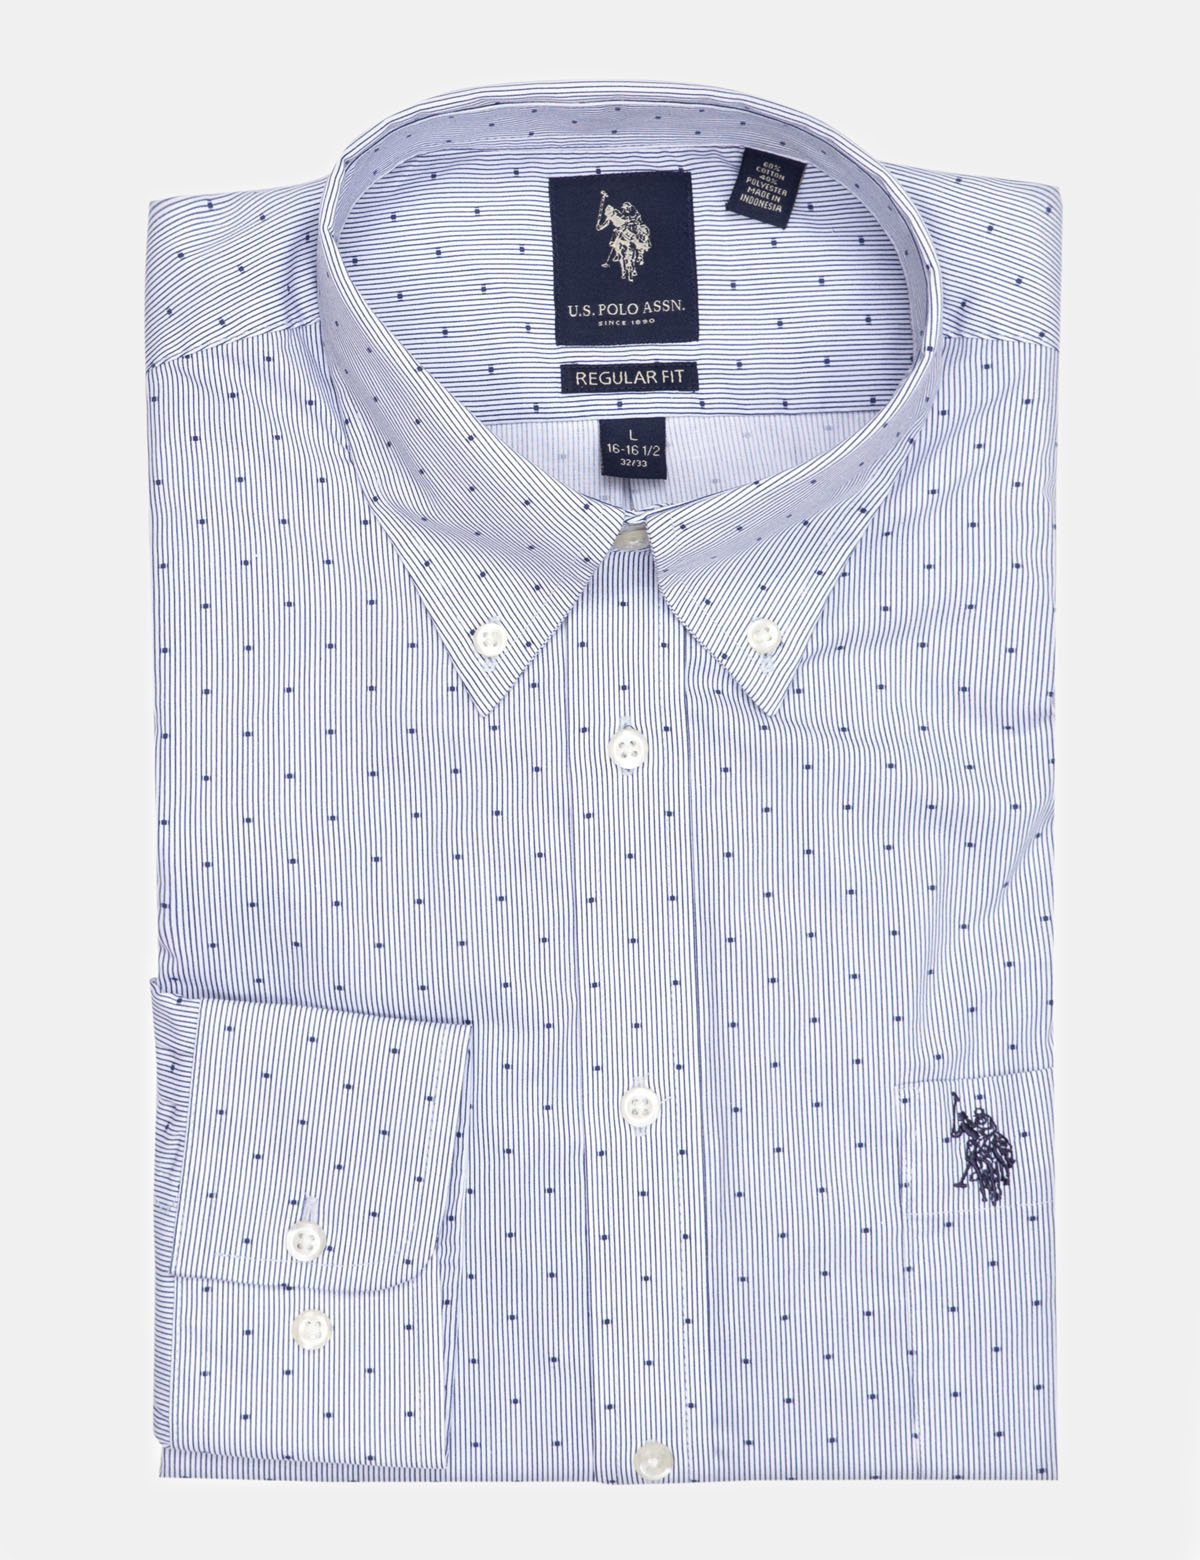 DOT STRIPED DRESS SHIRT - U.S. Polo Assn.